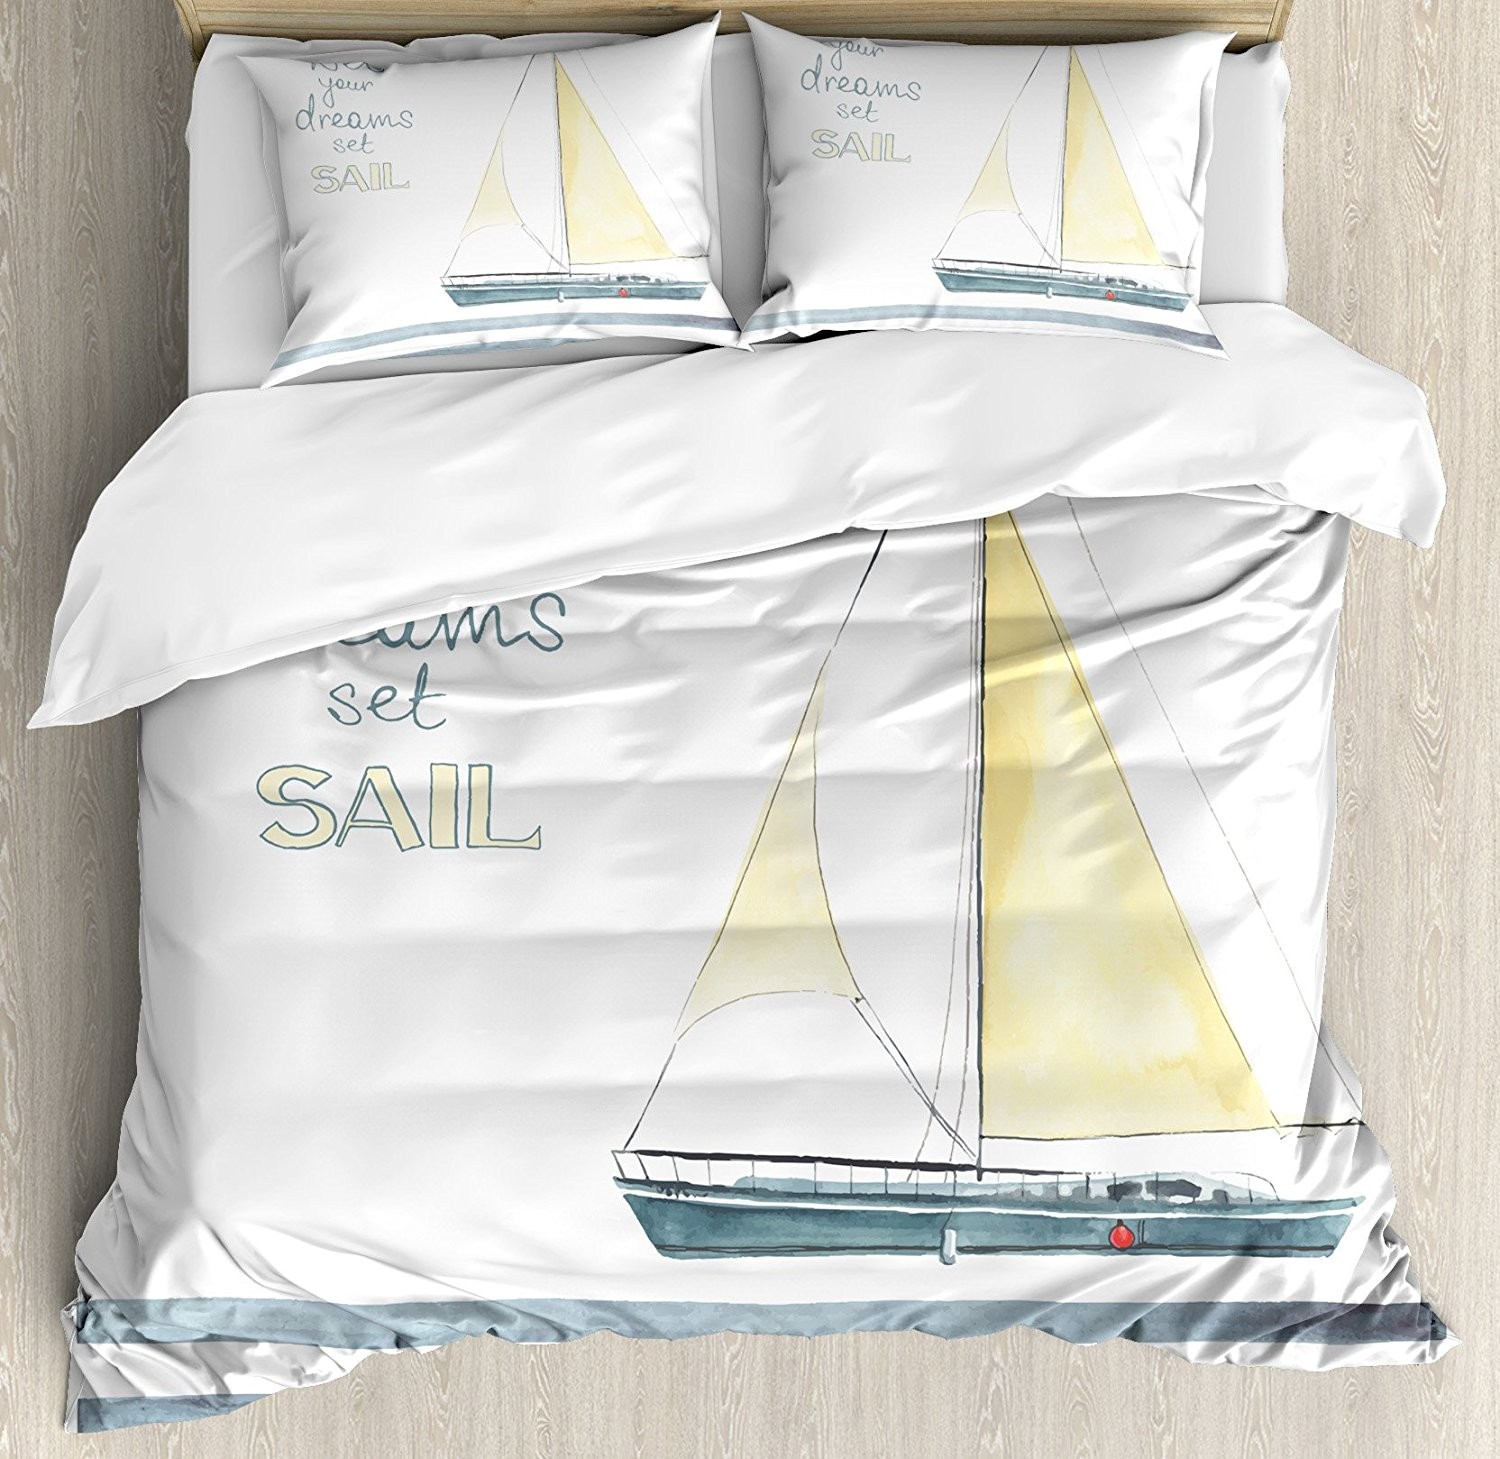 Nautical Duvet Cover Set Let Your Dreams Set Sail Quote Stripes Yacht Interior Navigation Theme, 4 Piece Bedding Set